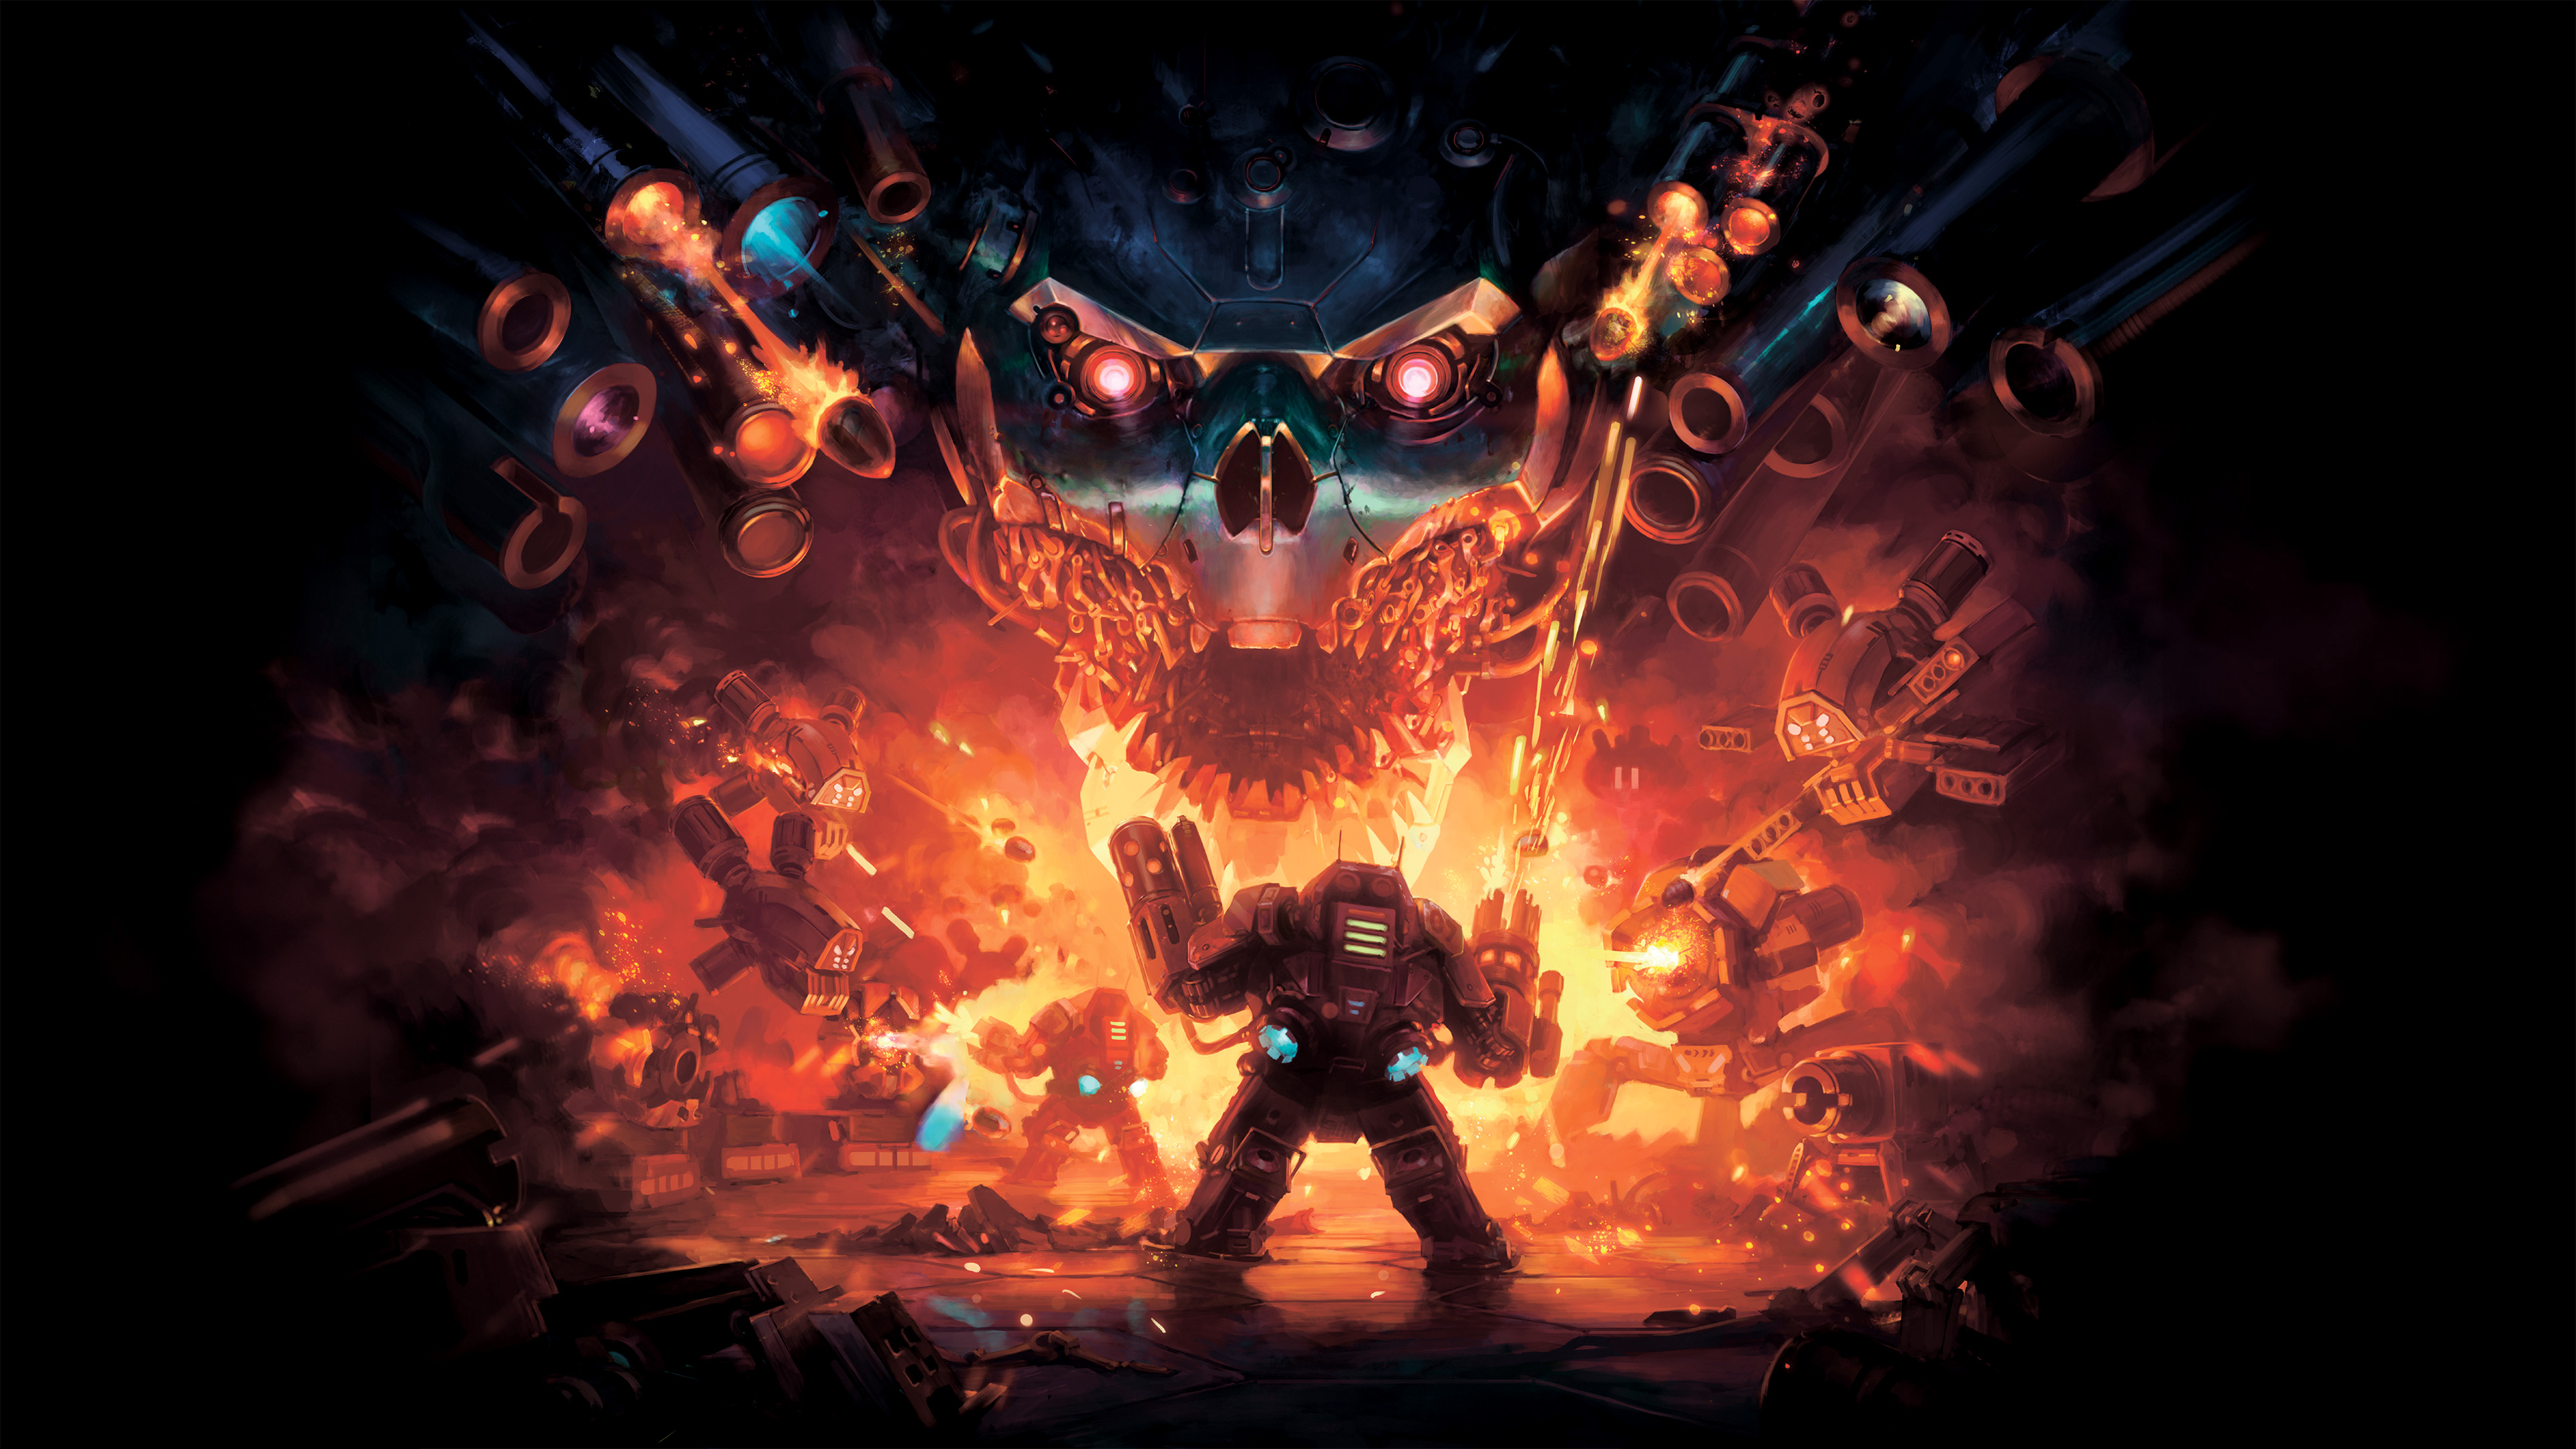 mothergunship 2018 4k 1537691821 - Mothergunship 2018 4k - mothergunship wallpapers, hd-wallpapers, games wallpapers, fire wallpapers, burning wallpapers, 4k-wallpapers, 2018 games wallpapers